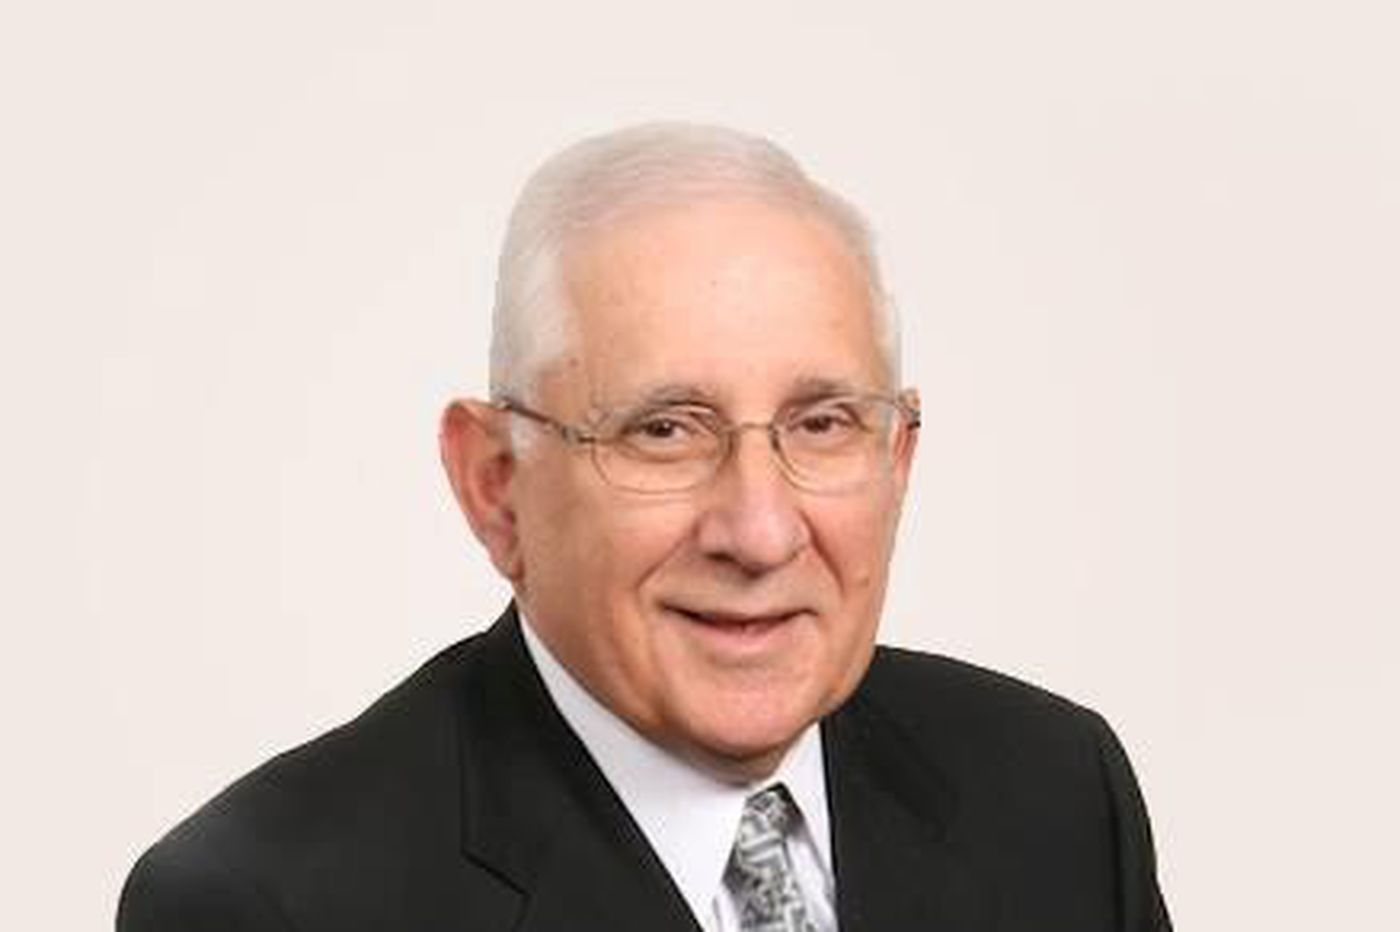 Bennett Goldstein, 86, former funeral-home president and civic leader